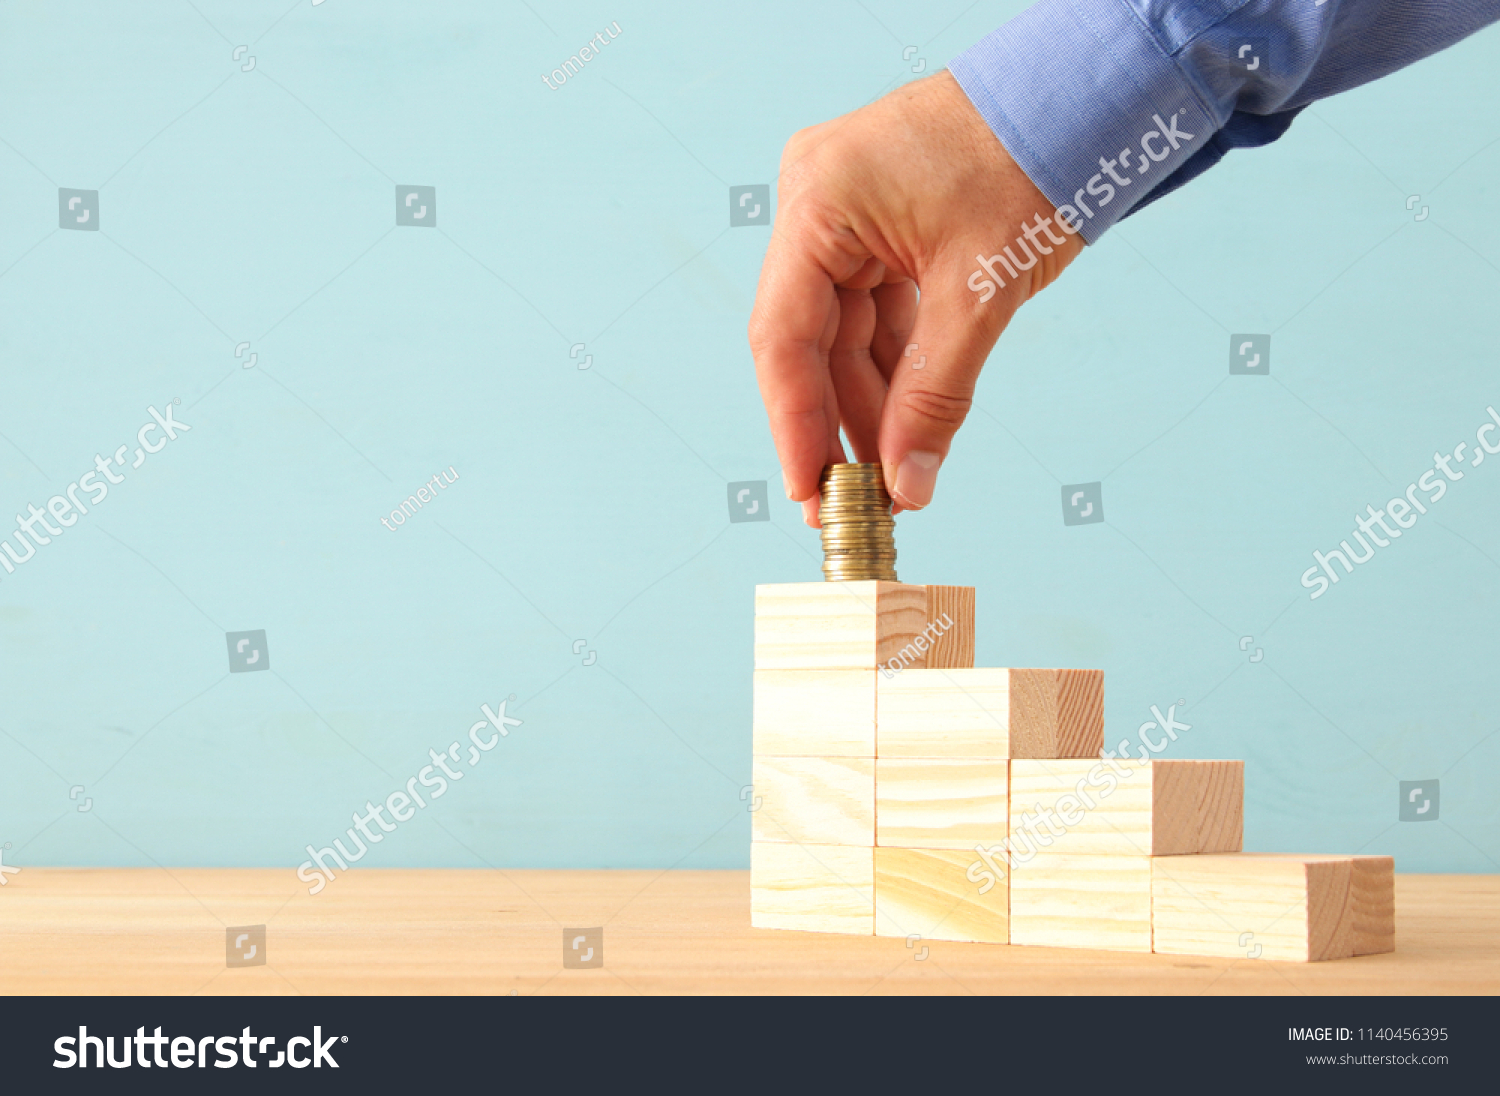 concept image of Saving money or investing. putting stack of coins at the top #1140456395